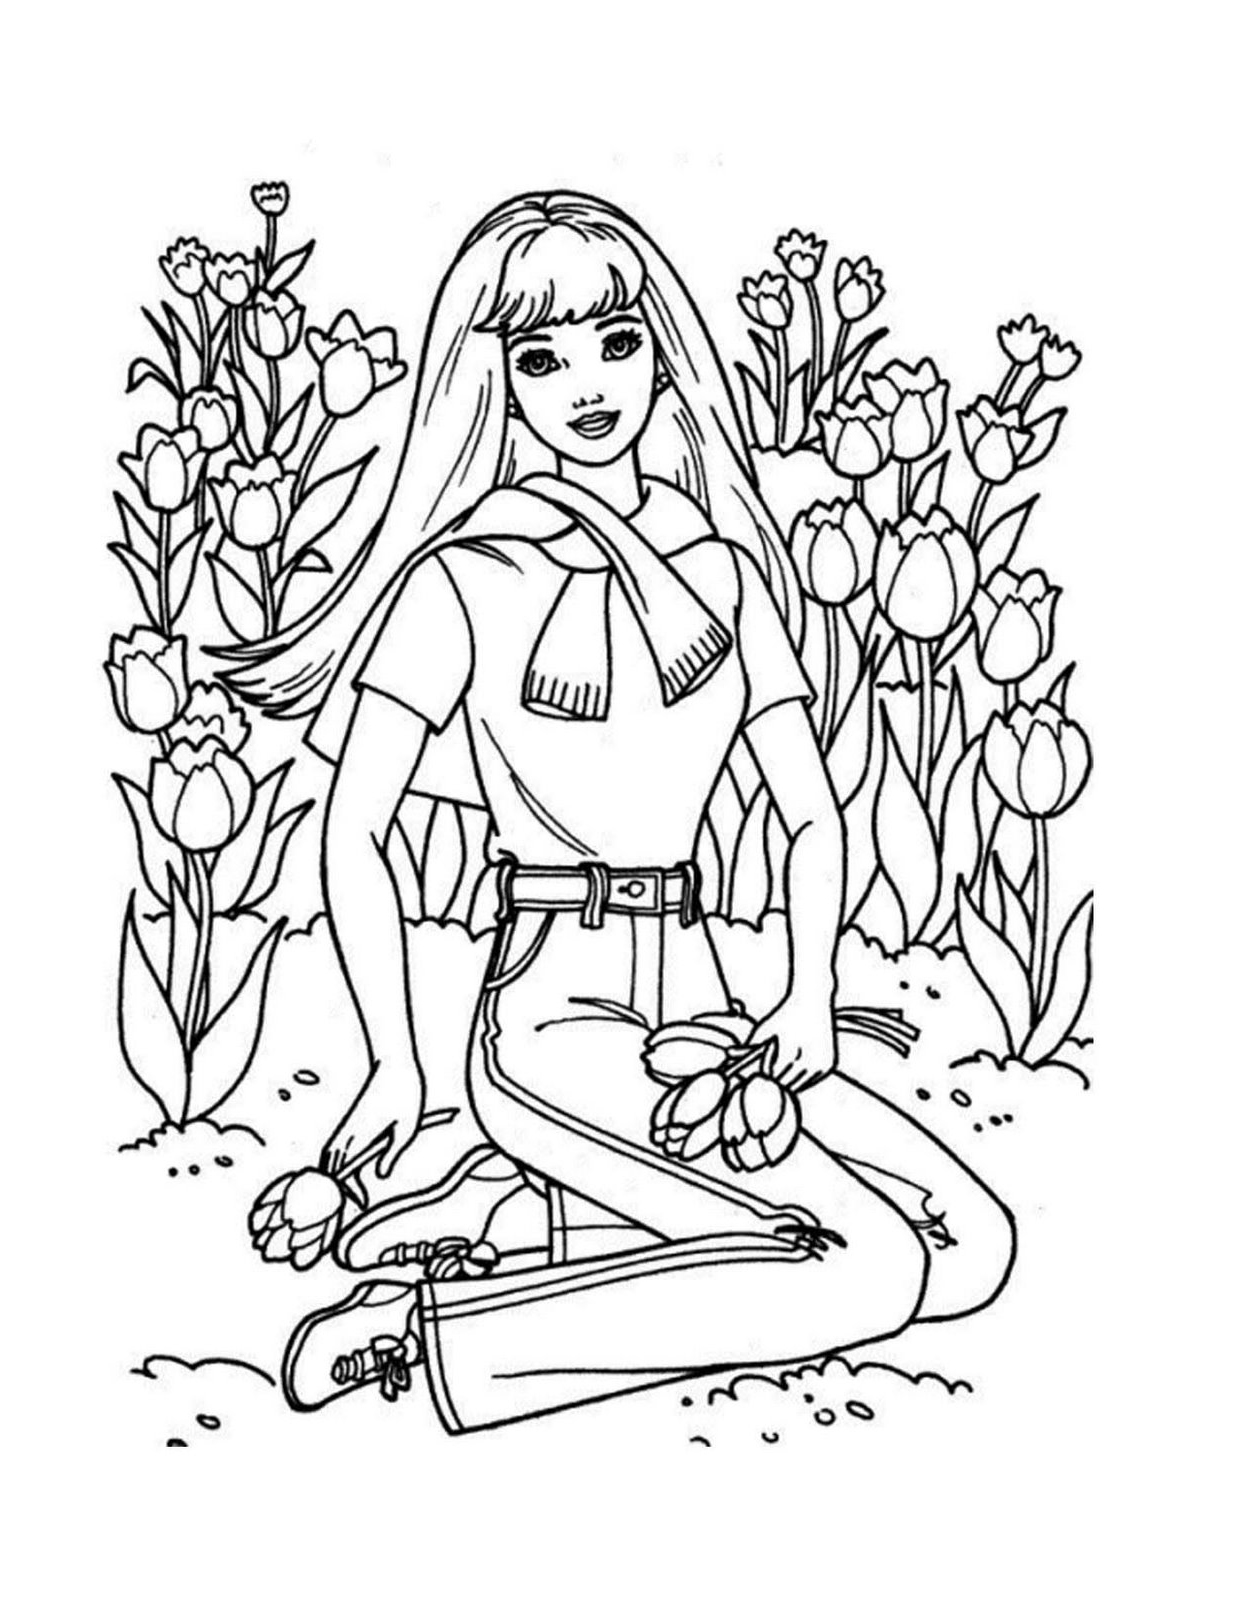 coloring pictures barbie 40 barbie coloring pages for kids barbie pictures coloring